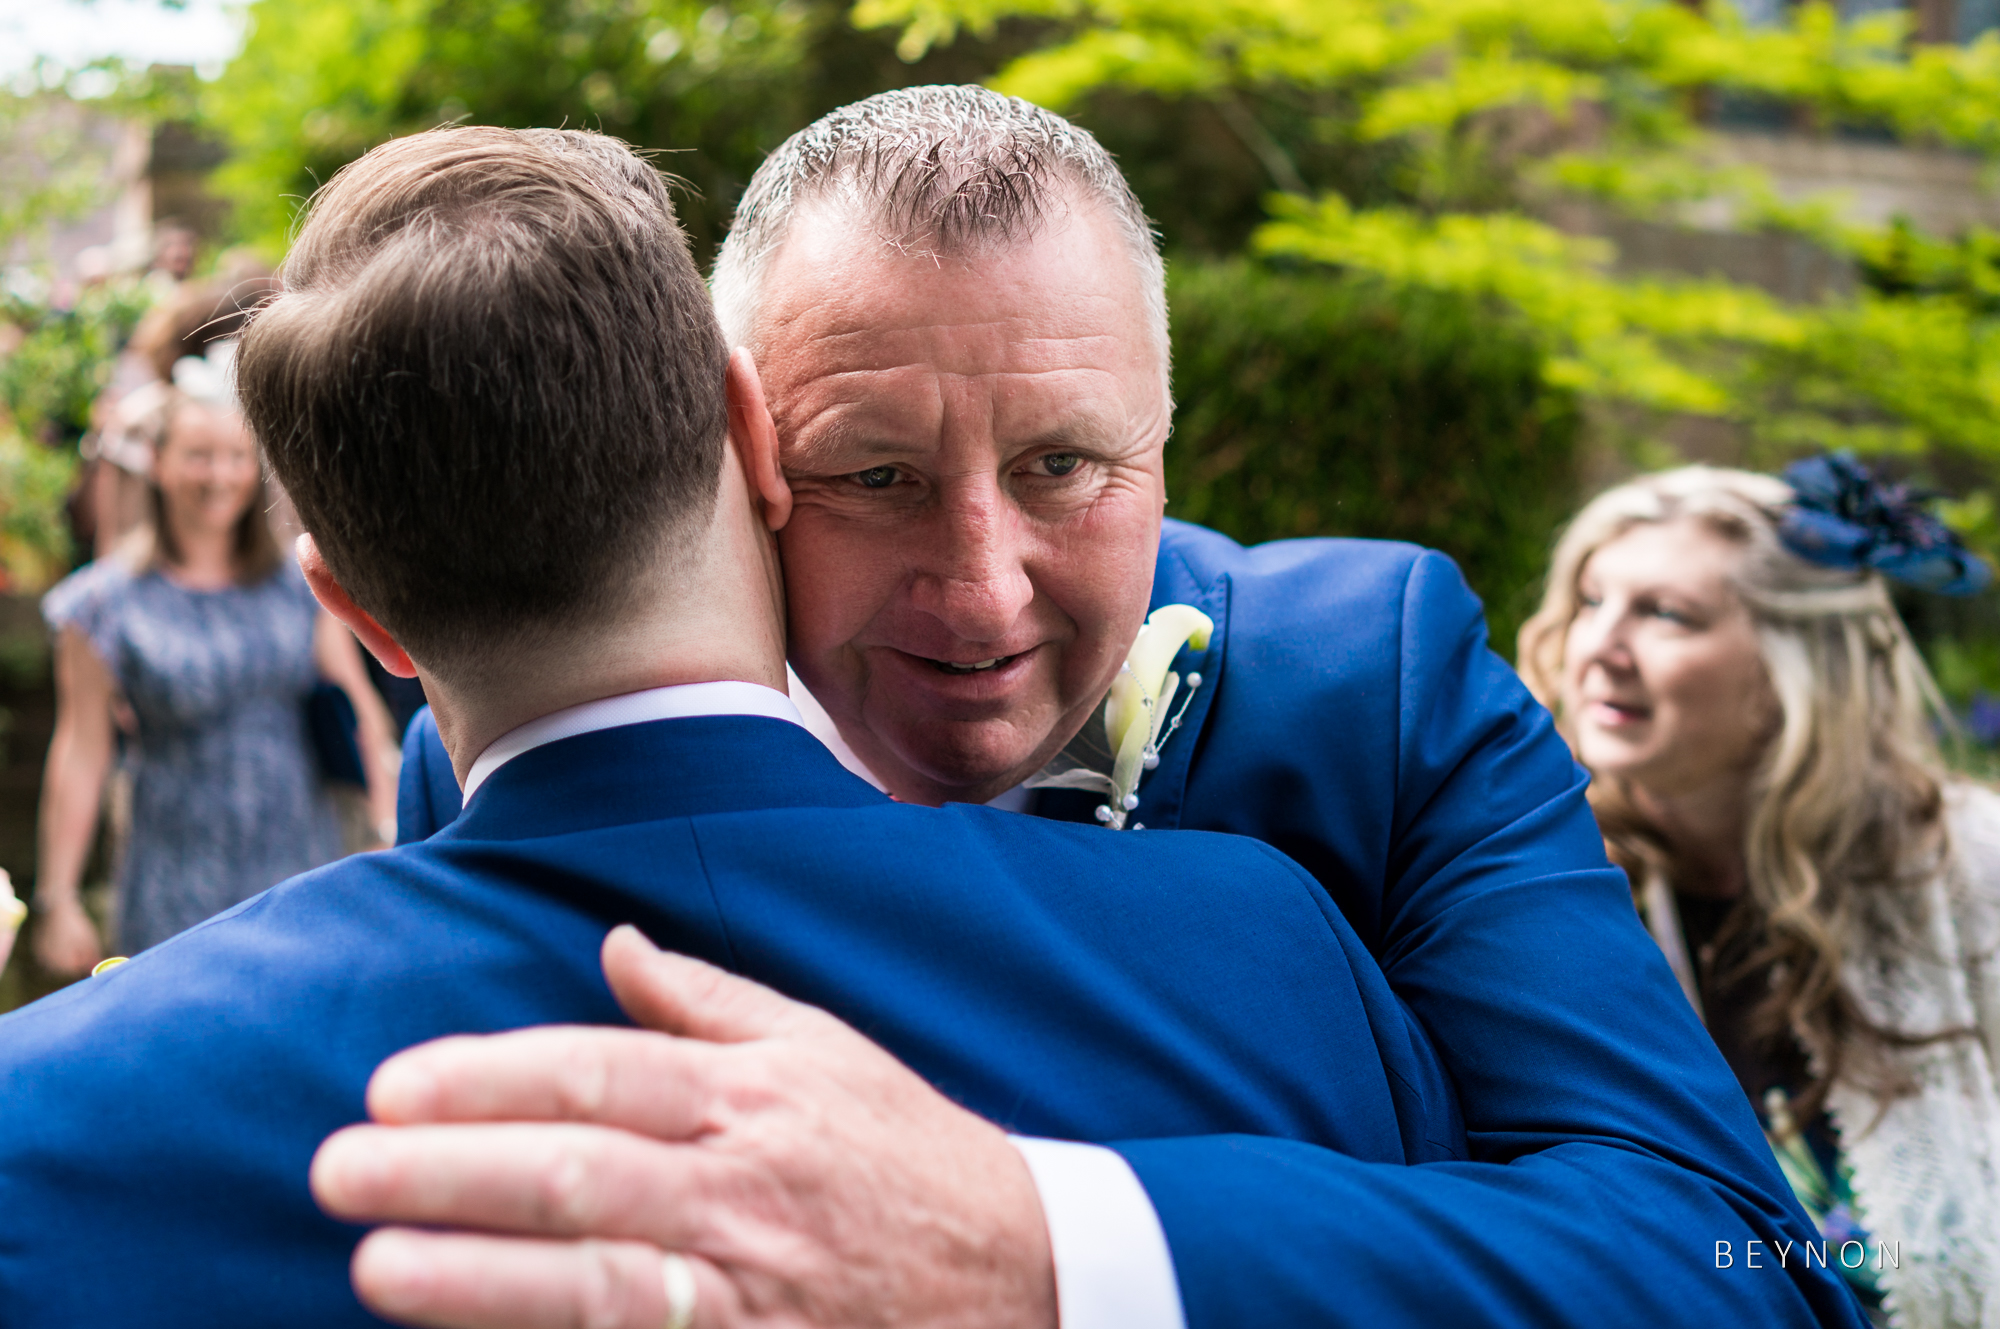 The father of the bride hugs the groom